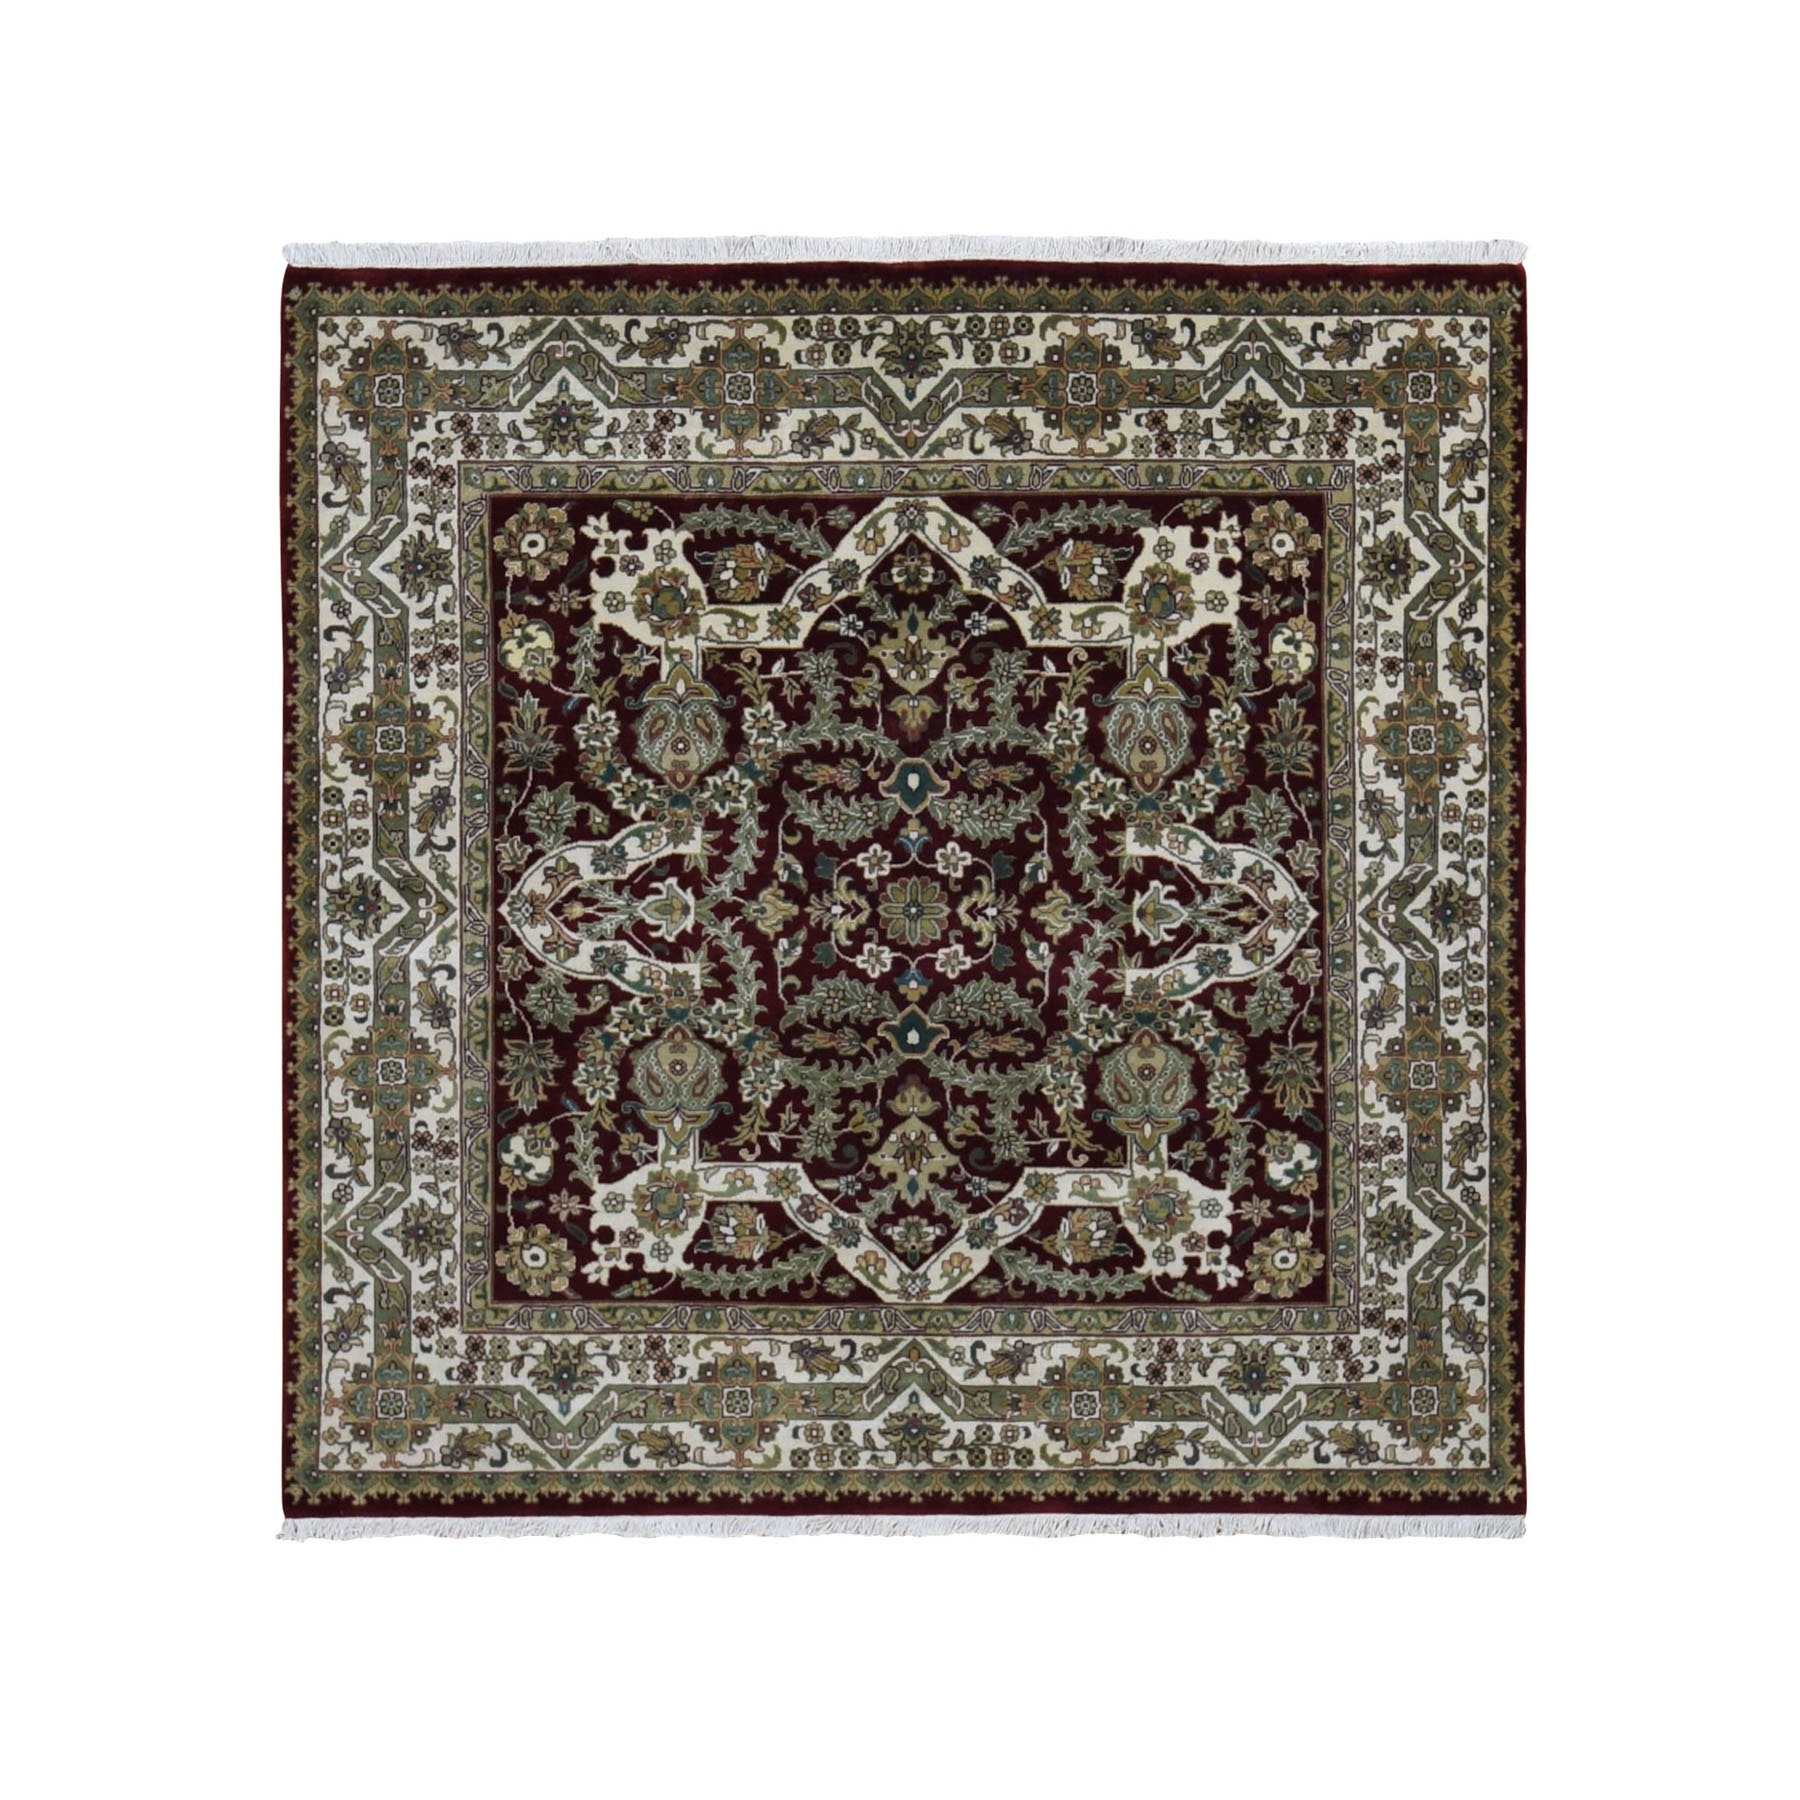 Pirniakan Collection Hand Knotted Red Rug No: 0198148